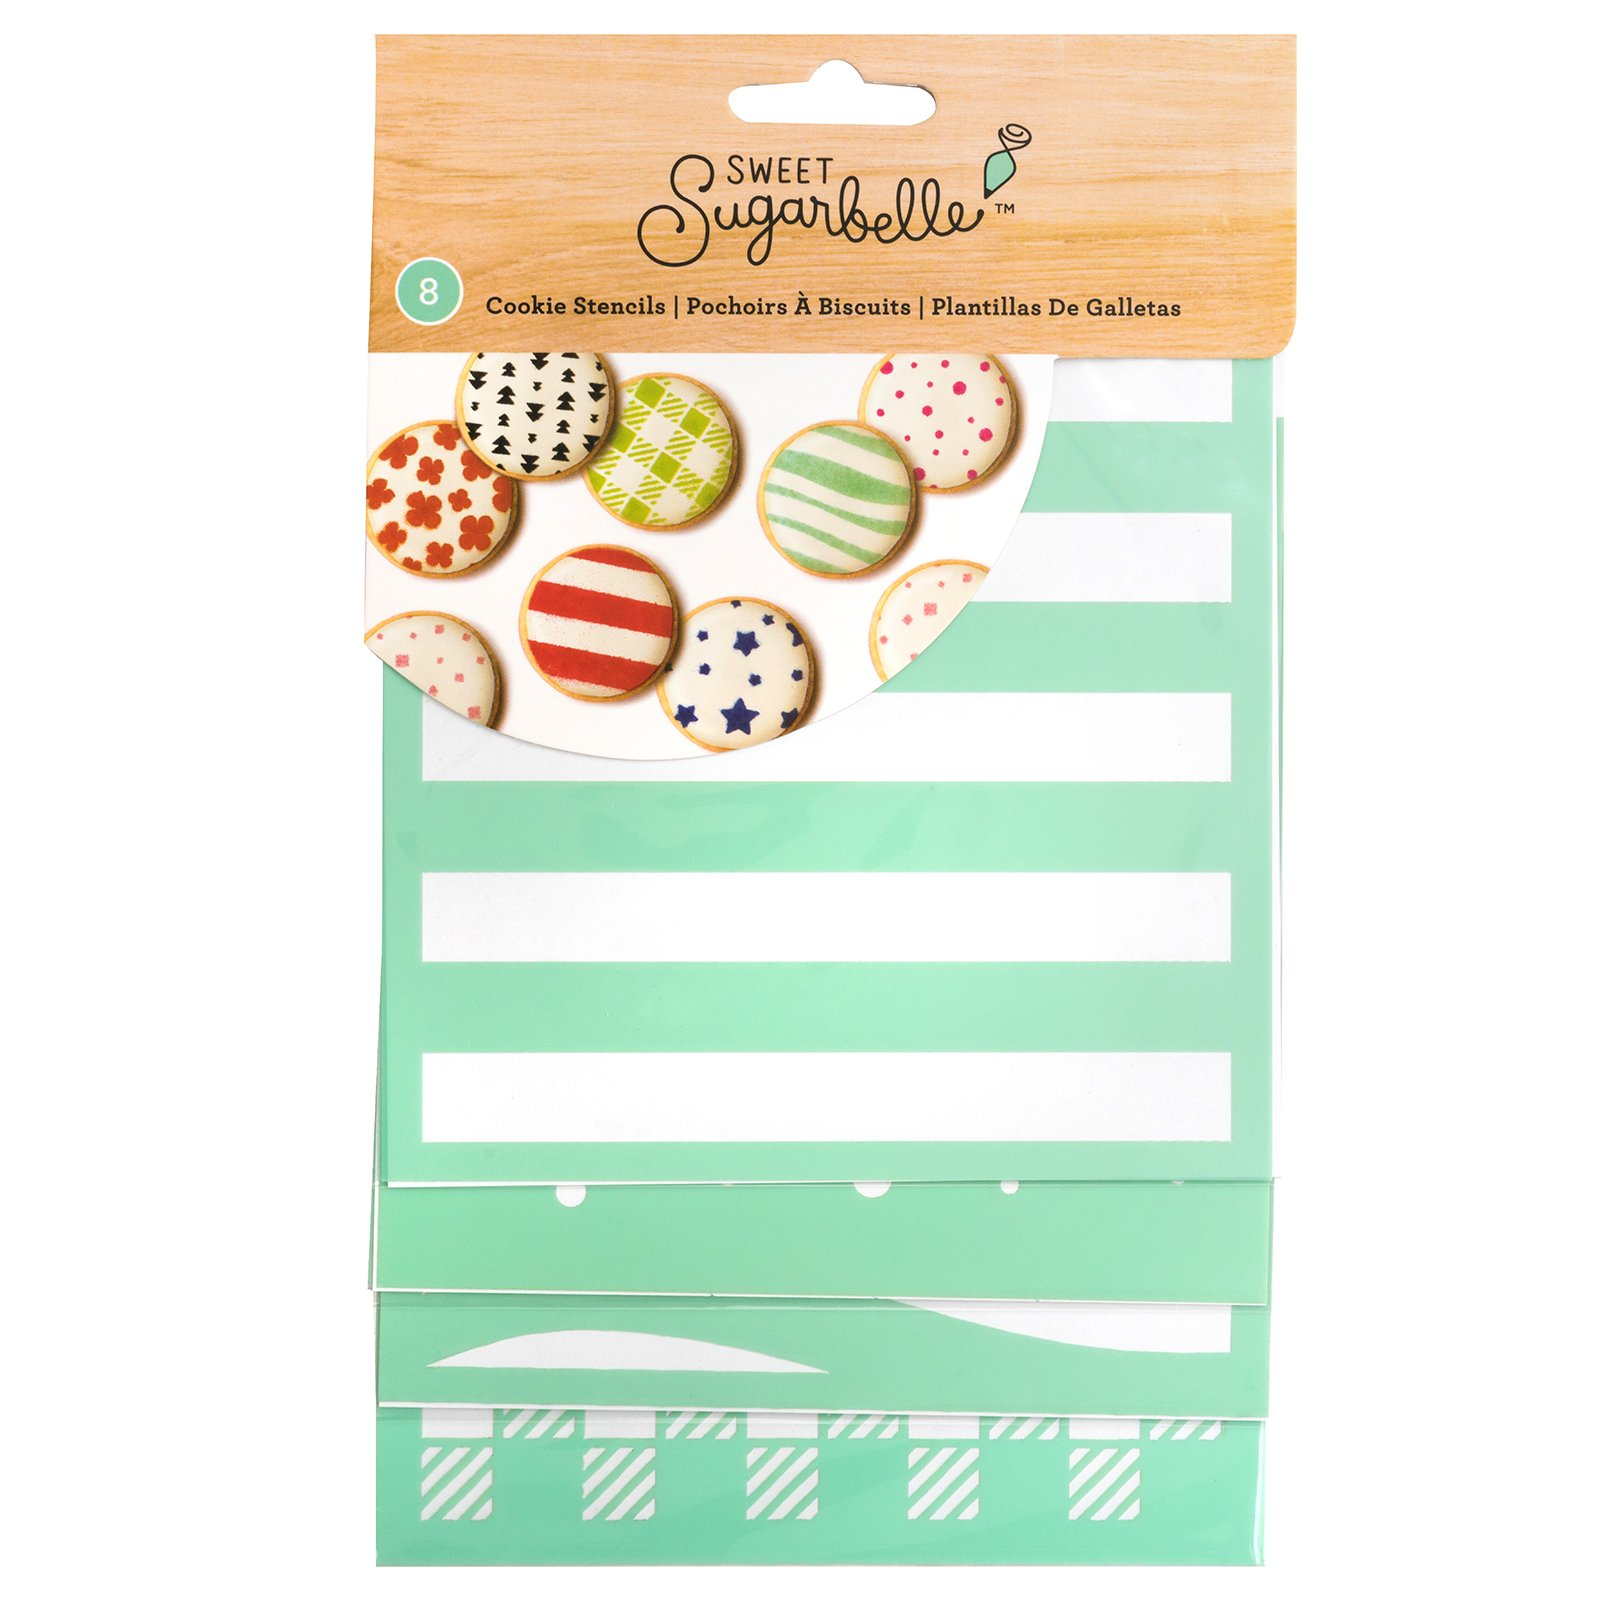 Sweet Sugarbelle 8 Piece 5 x 5 Inch Square Stencil Cookie Supplies by Sweet Sugarbelle